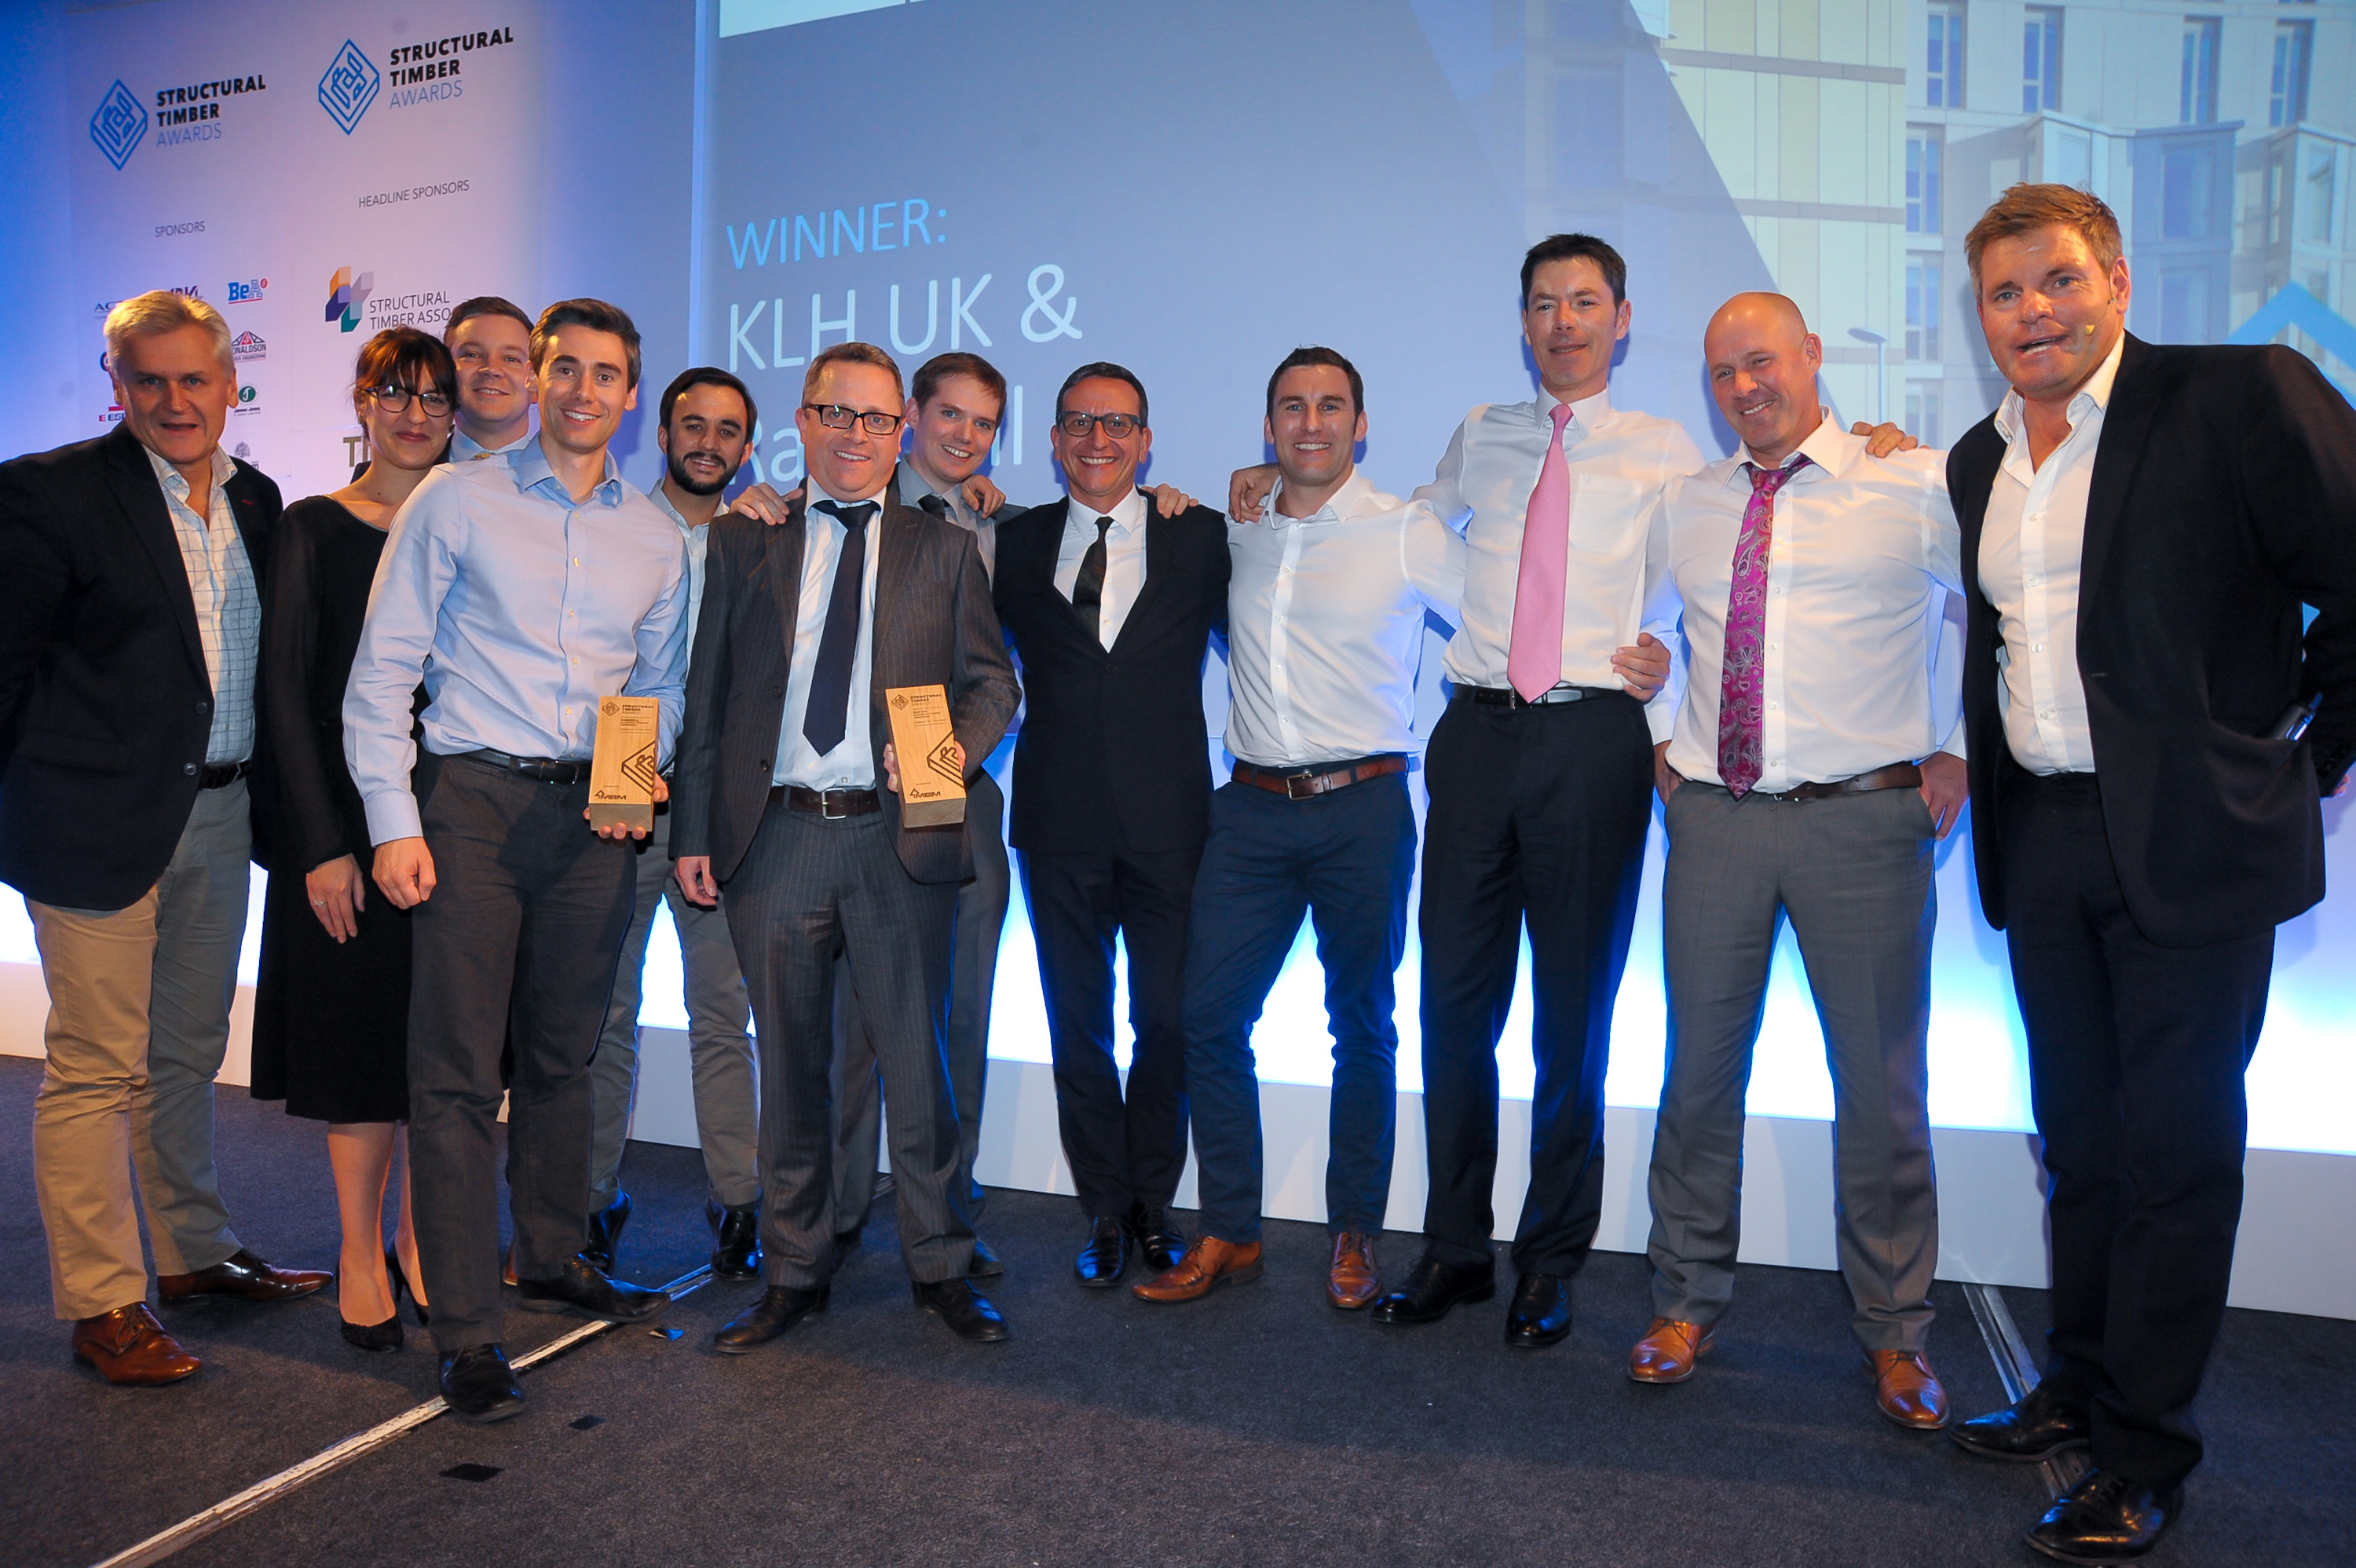 sta_awards_11.10.17___157_of_229_